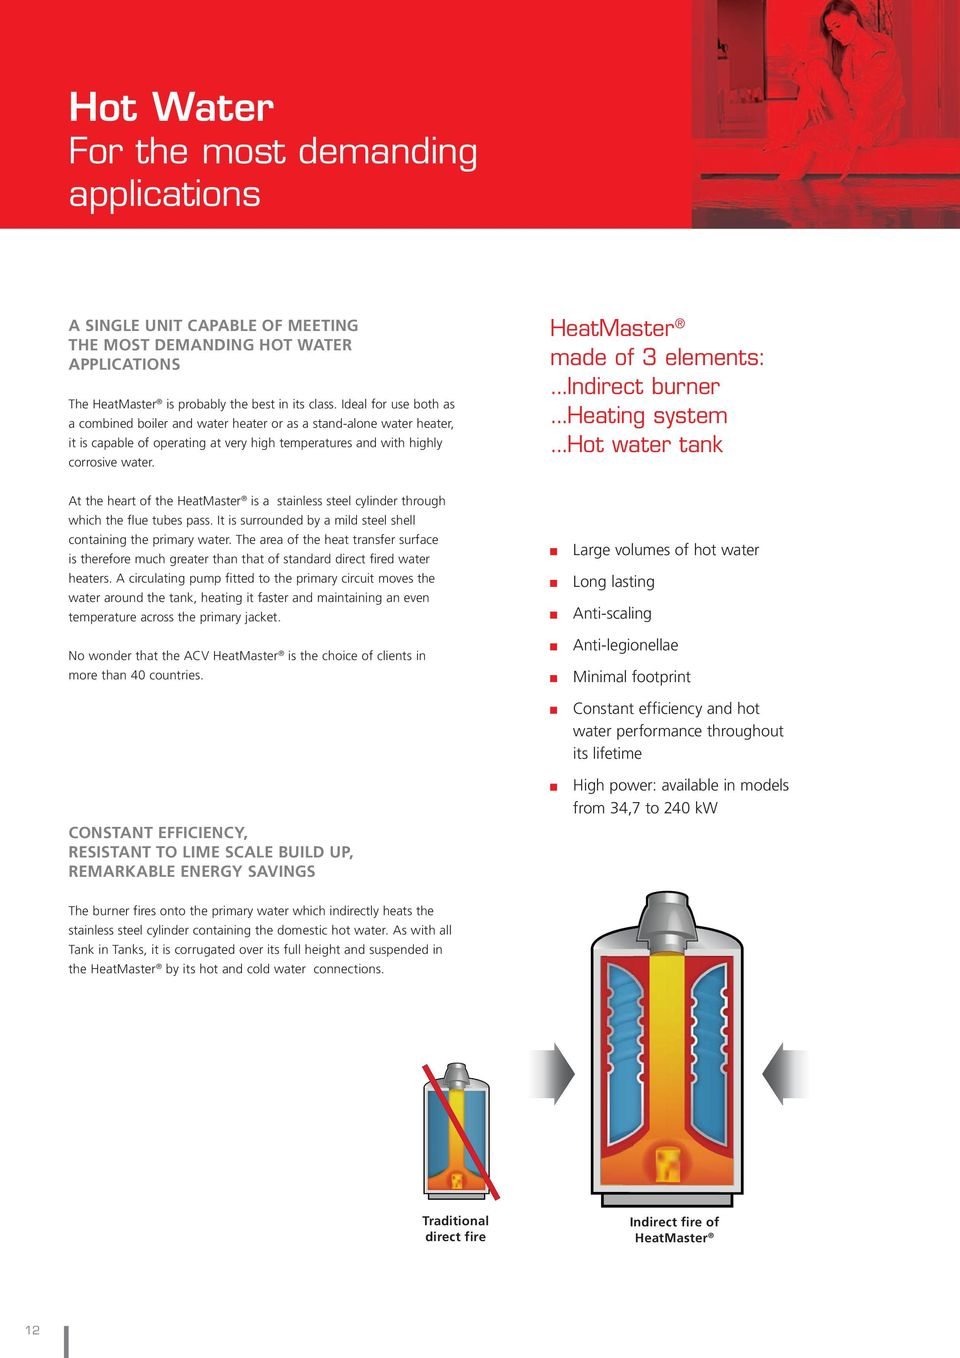 HeatMaster made of 3 elements:...indirect burner...heating system...hot water tank At the heart of the HeatMaster is a stainless steel cylinder through which the flue tubes pass.